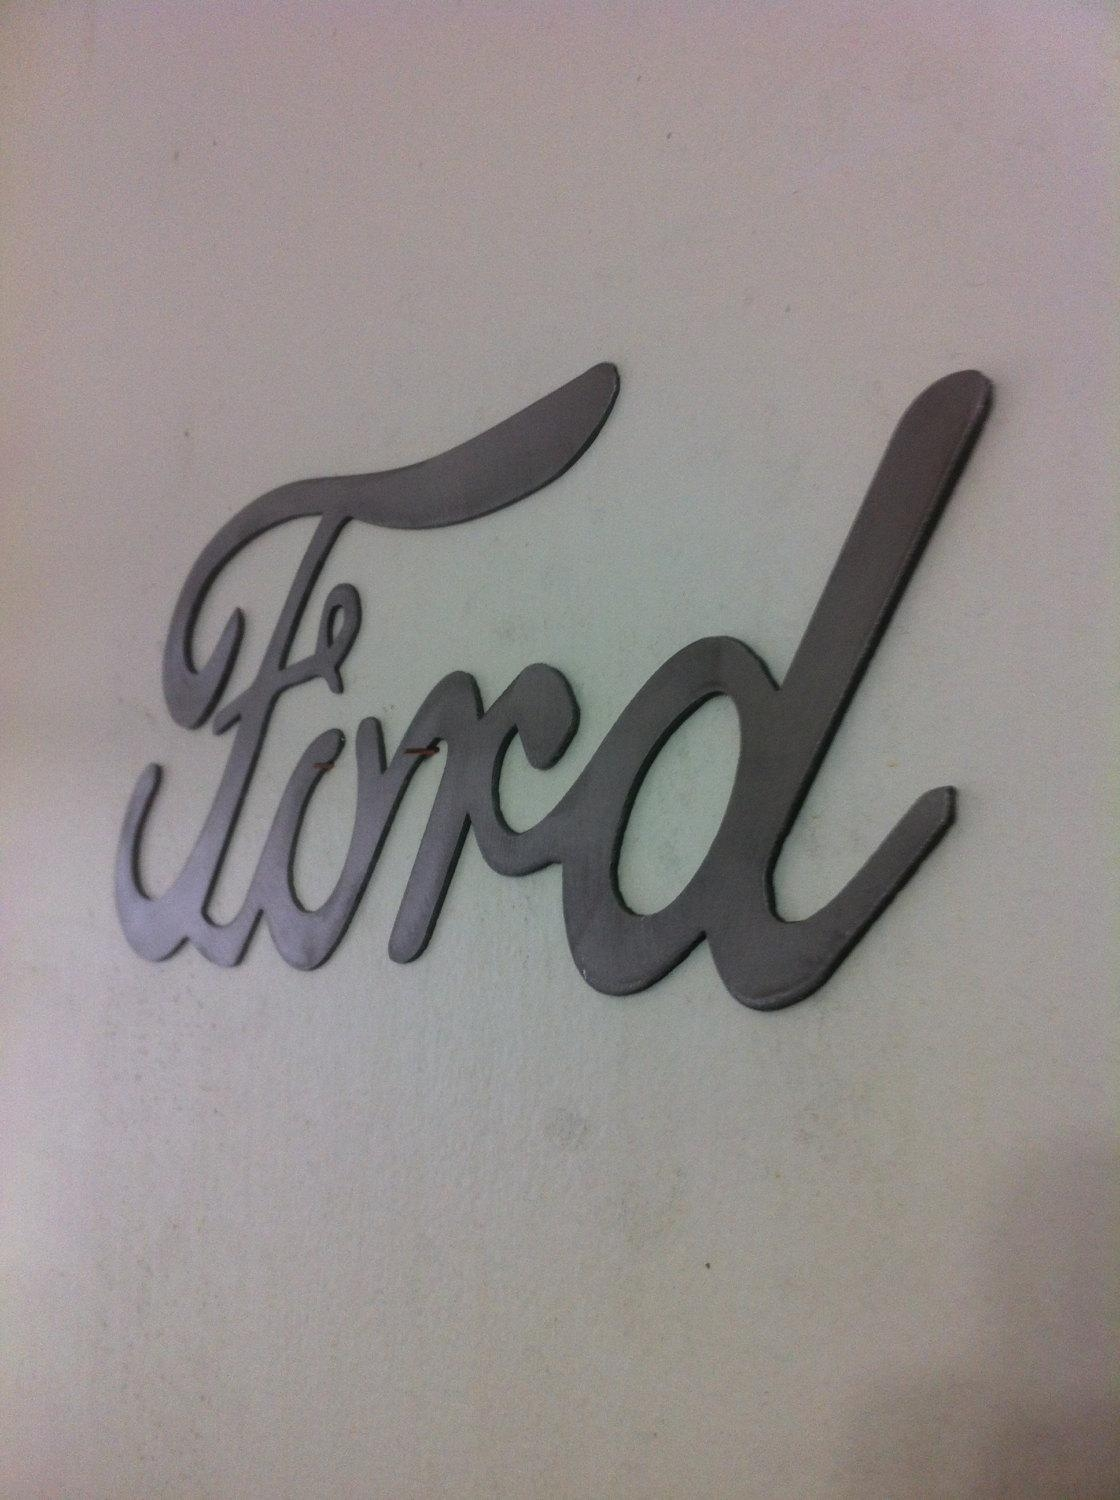 Ford Cursive Metal Wall Art Sign With Regard To Ford Mustang Metal Wall Art (Photo 17 of 20)